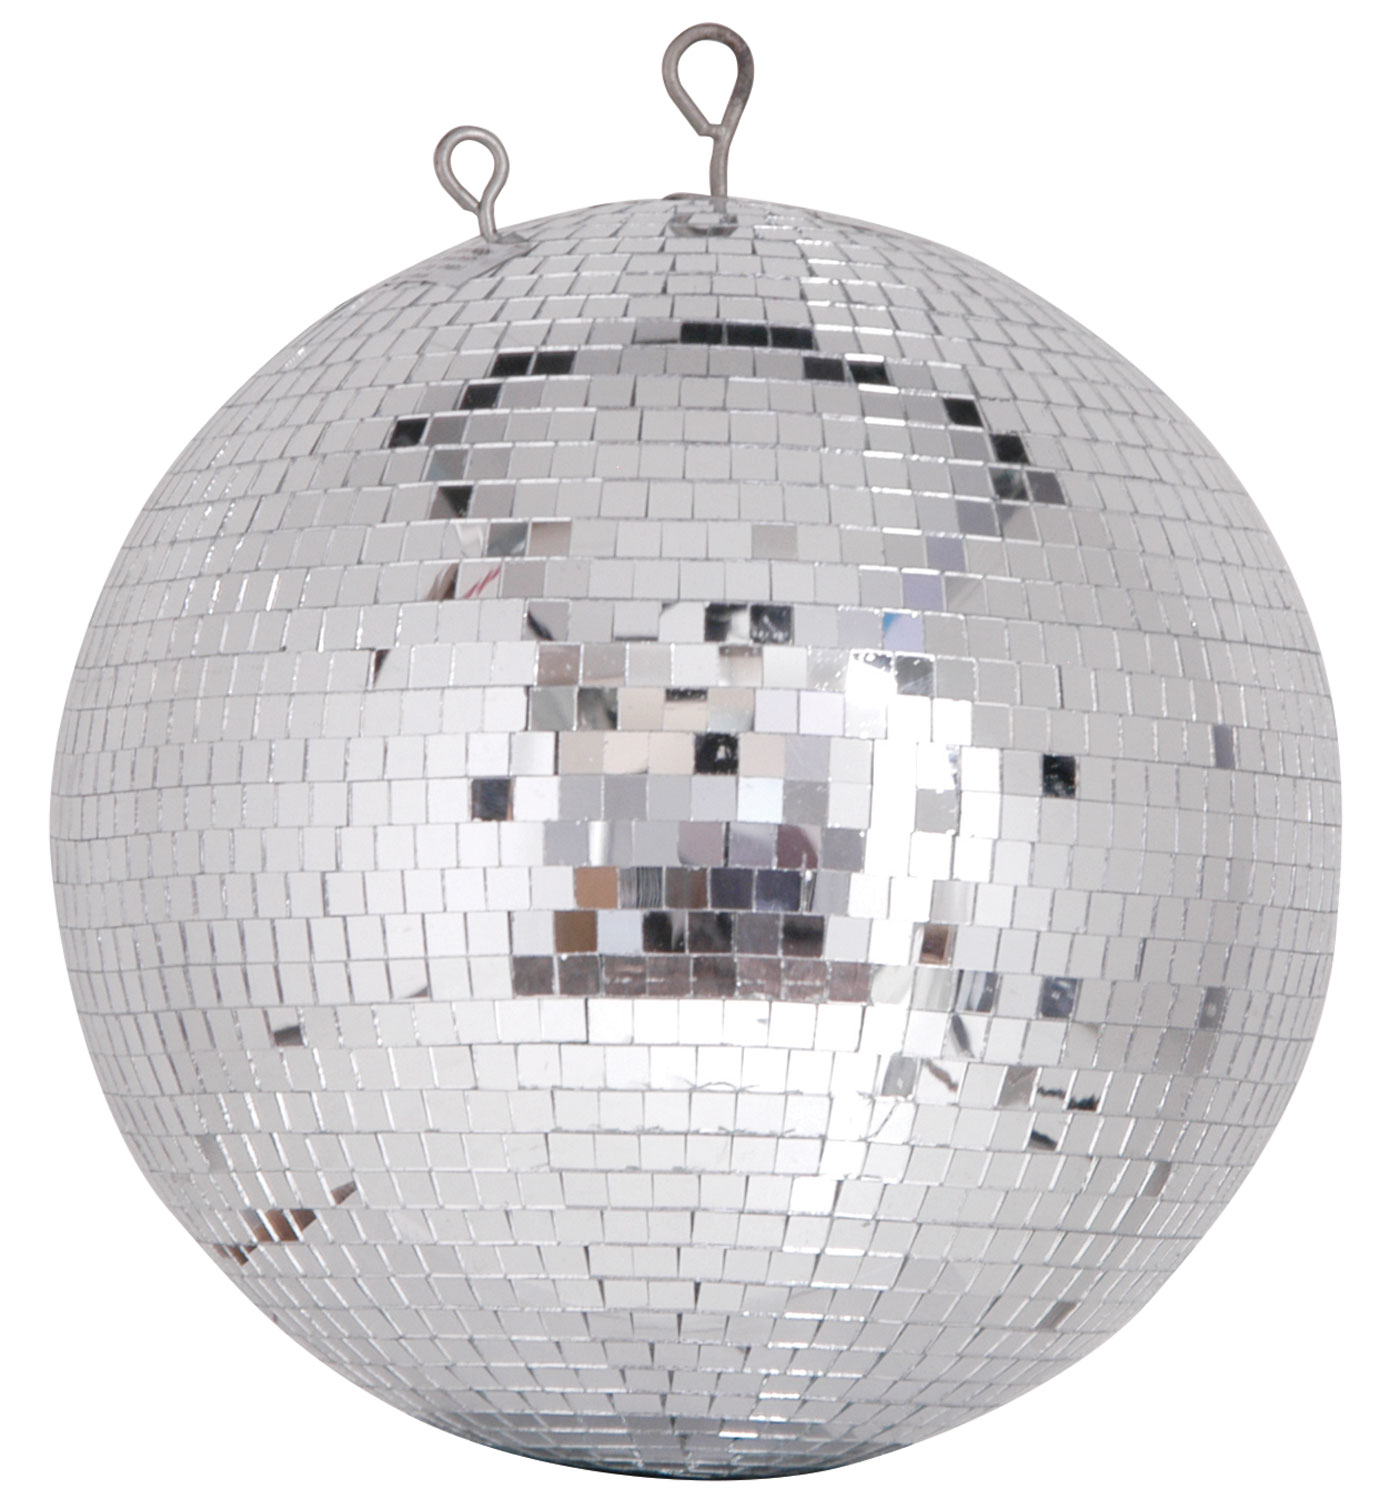 Professional mirror ball 10mm x 10mm tiles - 30cm�